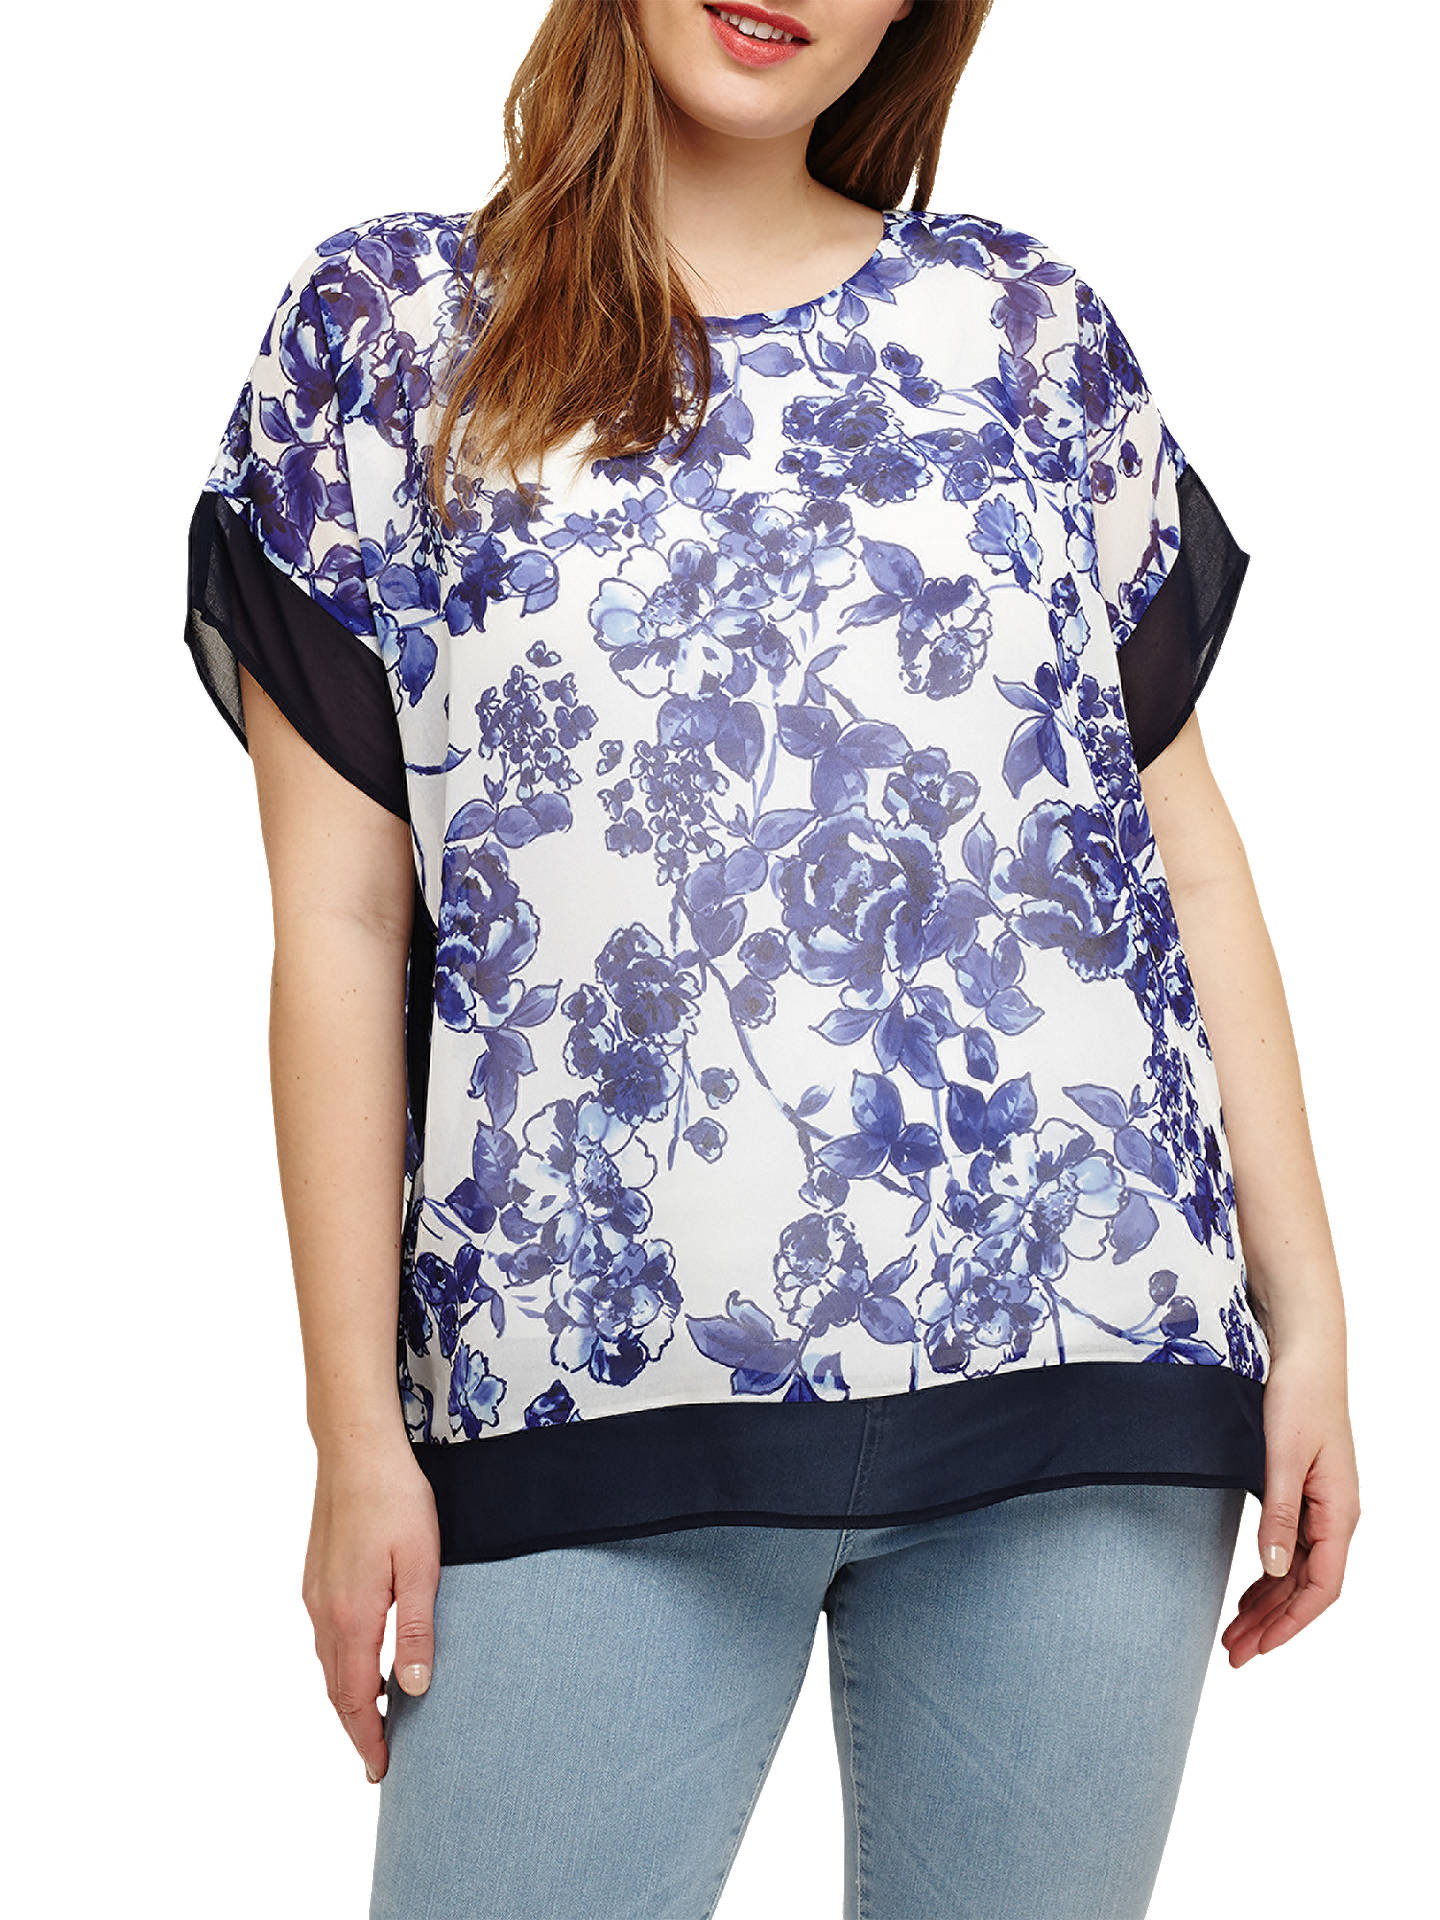 BuyStudio 8 Susan Floral Print Top, Blue/Ivory, 16 Online at johnlewis.com